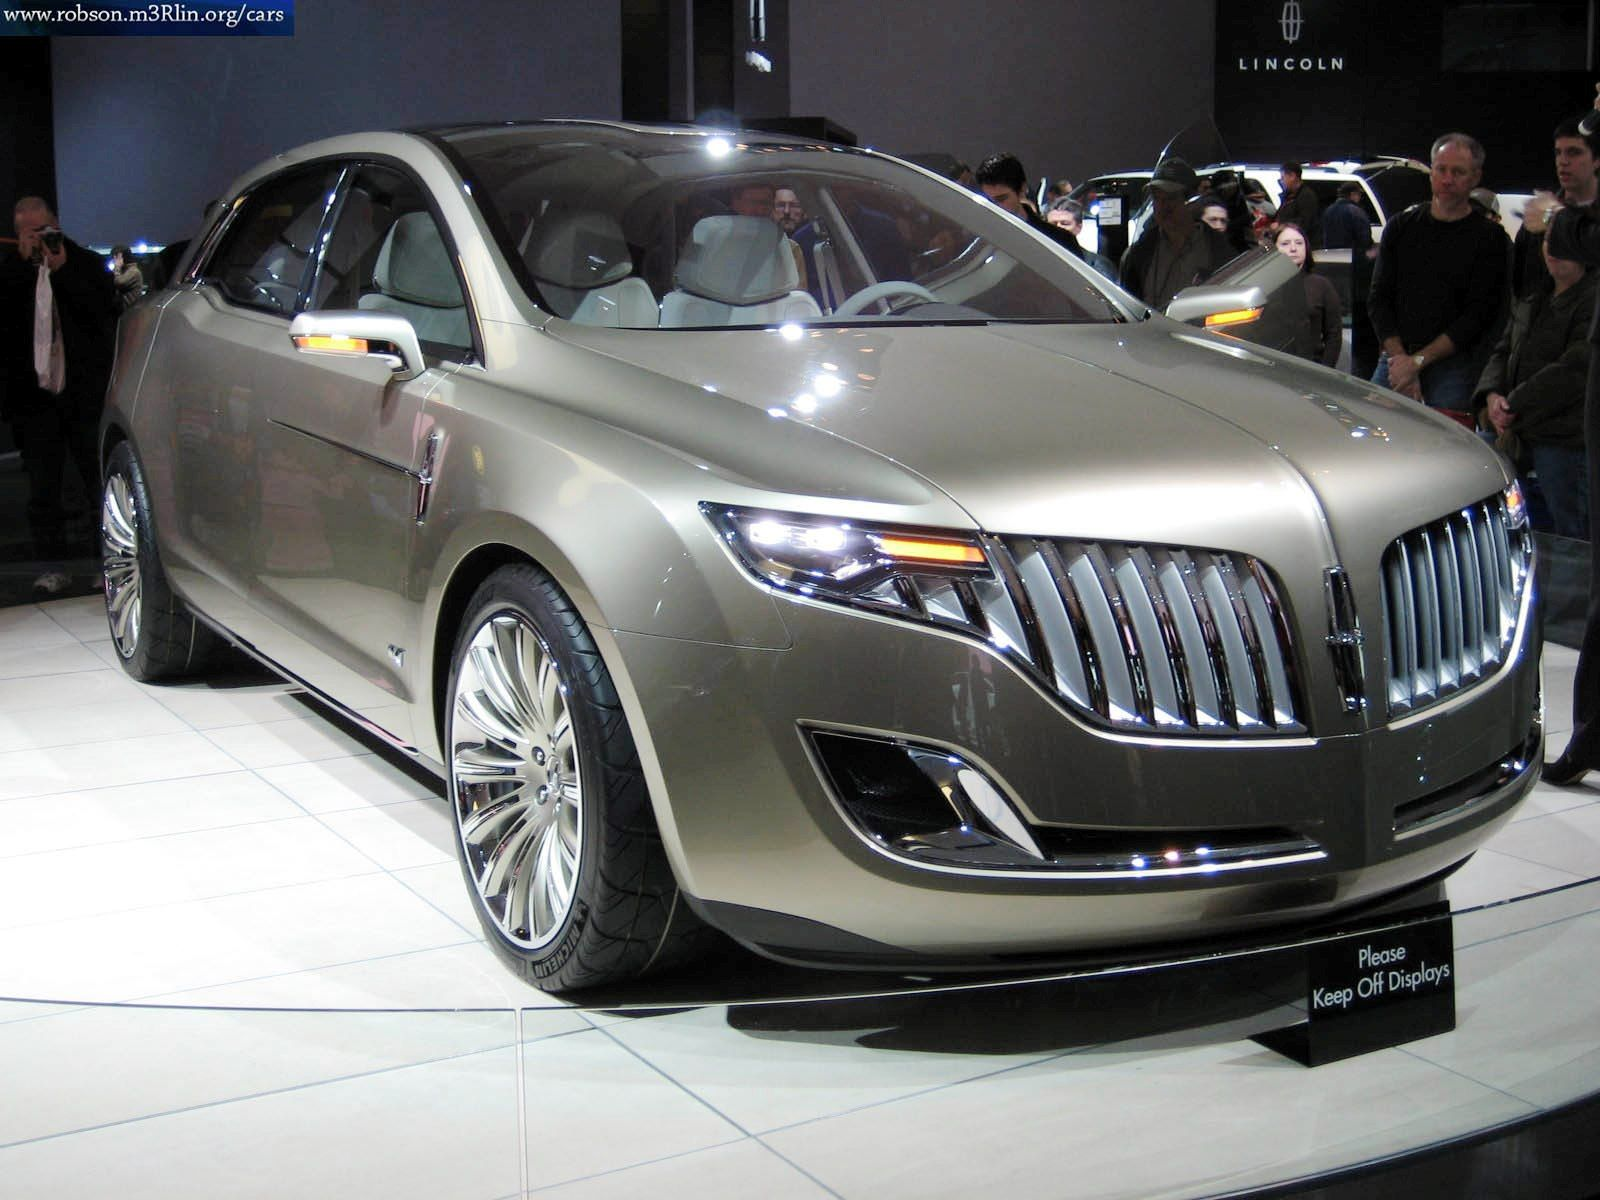 Http Lincolnmodels Com Wp Content Uploads 2013 03 Picture Of The Frontal View Of New Lincoln Car Jpg With Images New Lincoln Cars Lincoln Cars Best Used Luxury Cars